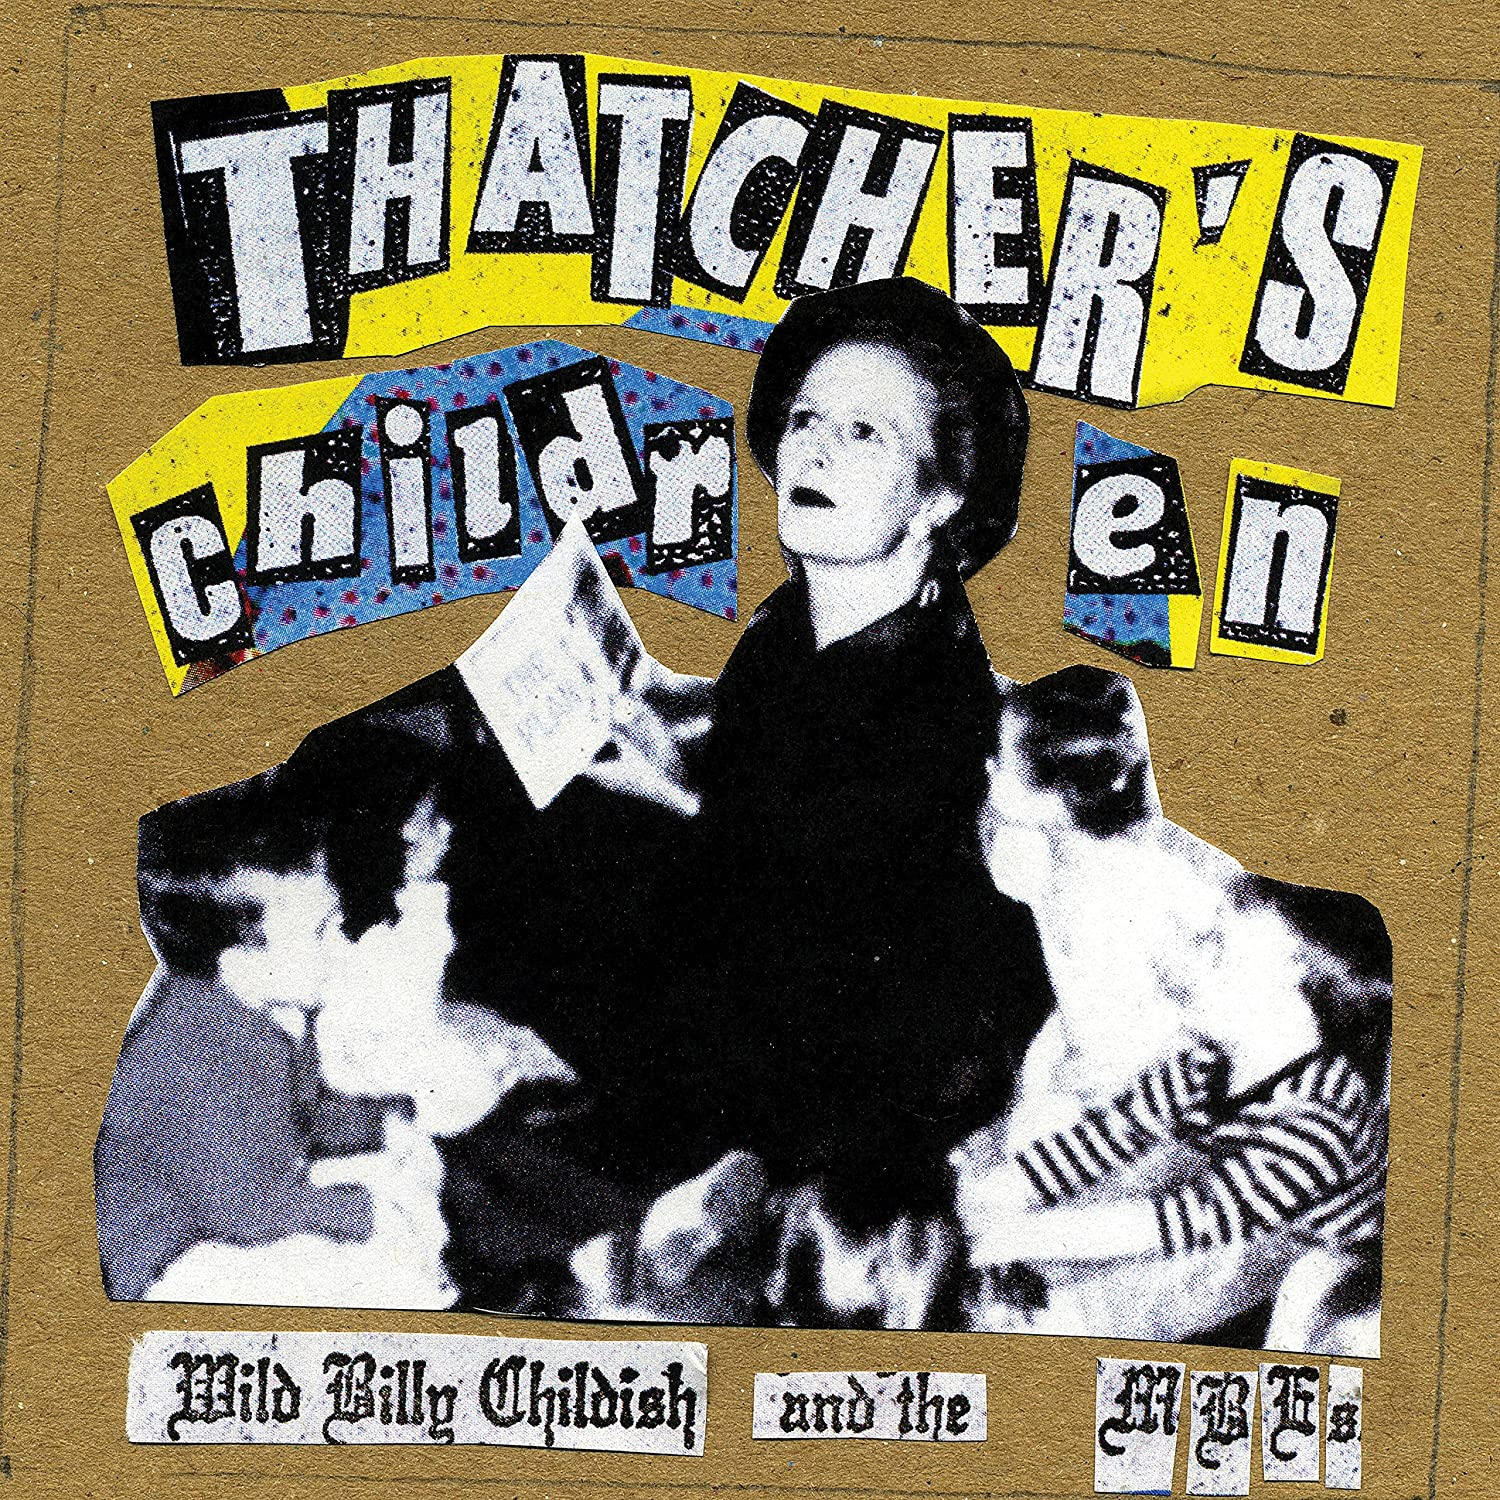 Wild Billy Childish/Thatcher's Children [LP]